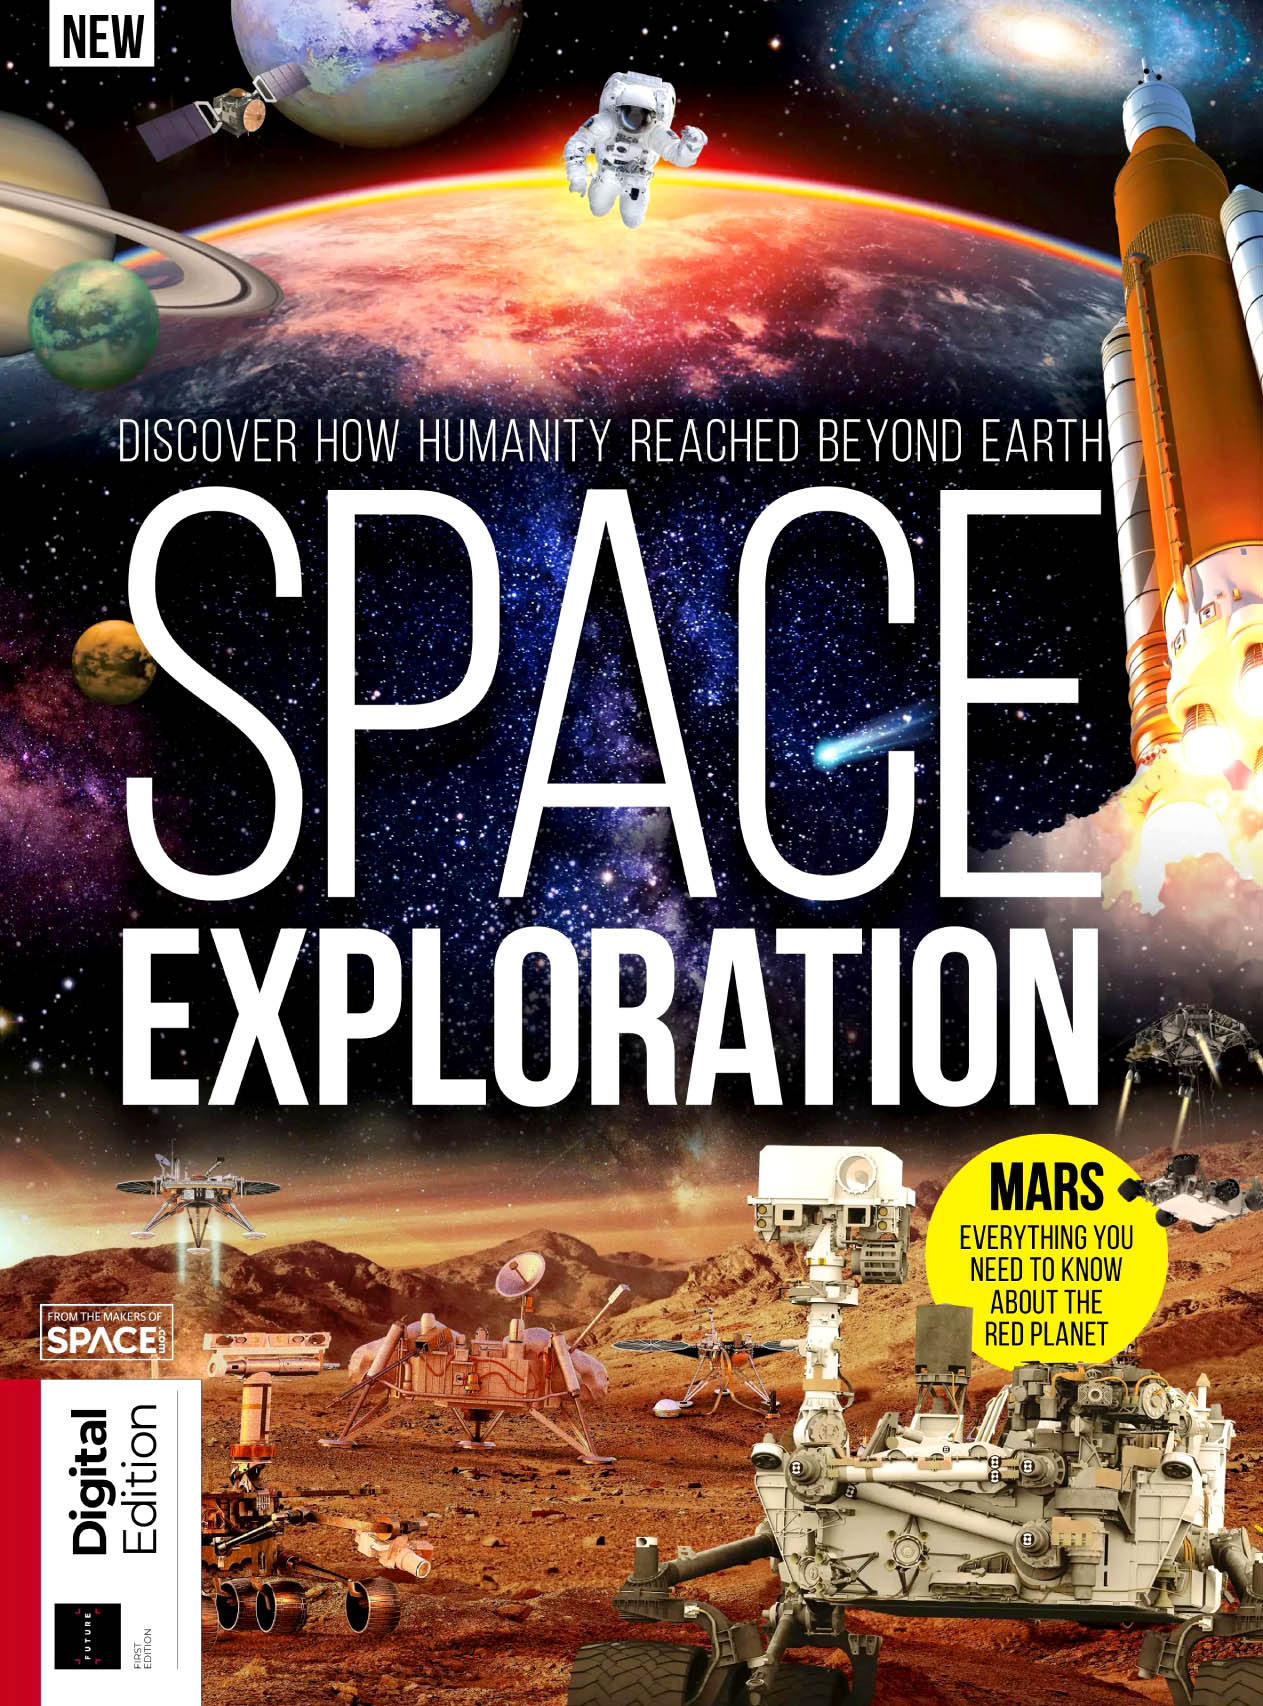 All About Space - Space Exploration 1st Ed 2021 1.jpg